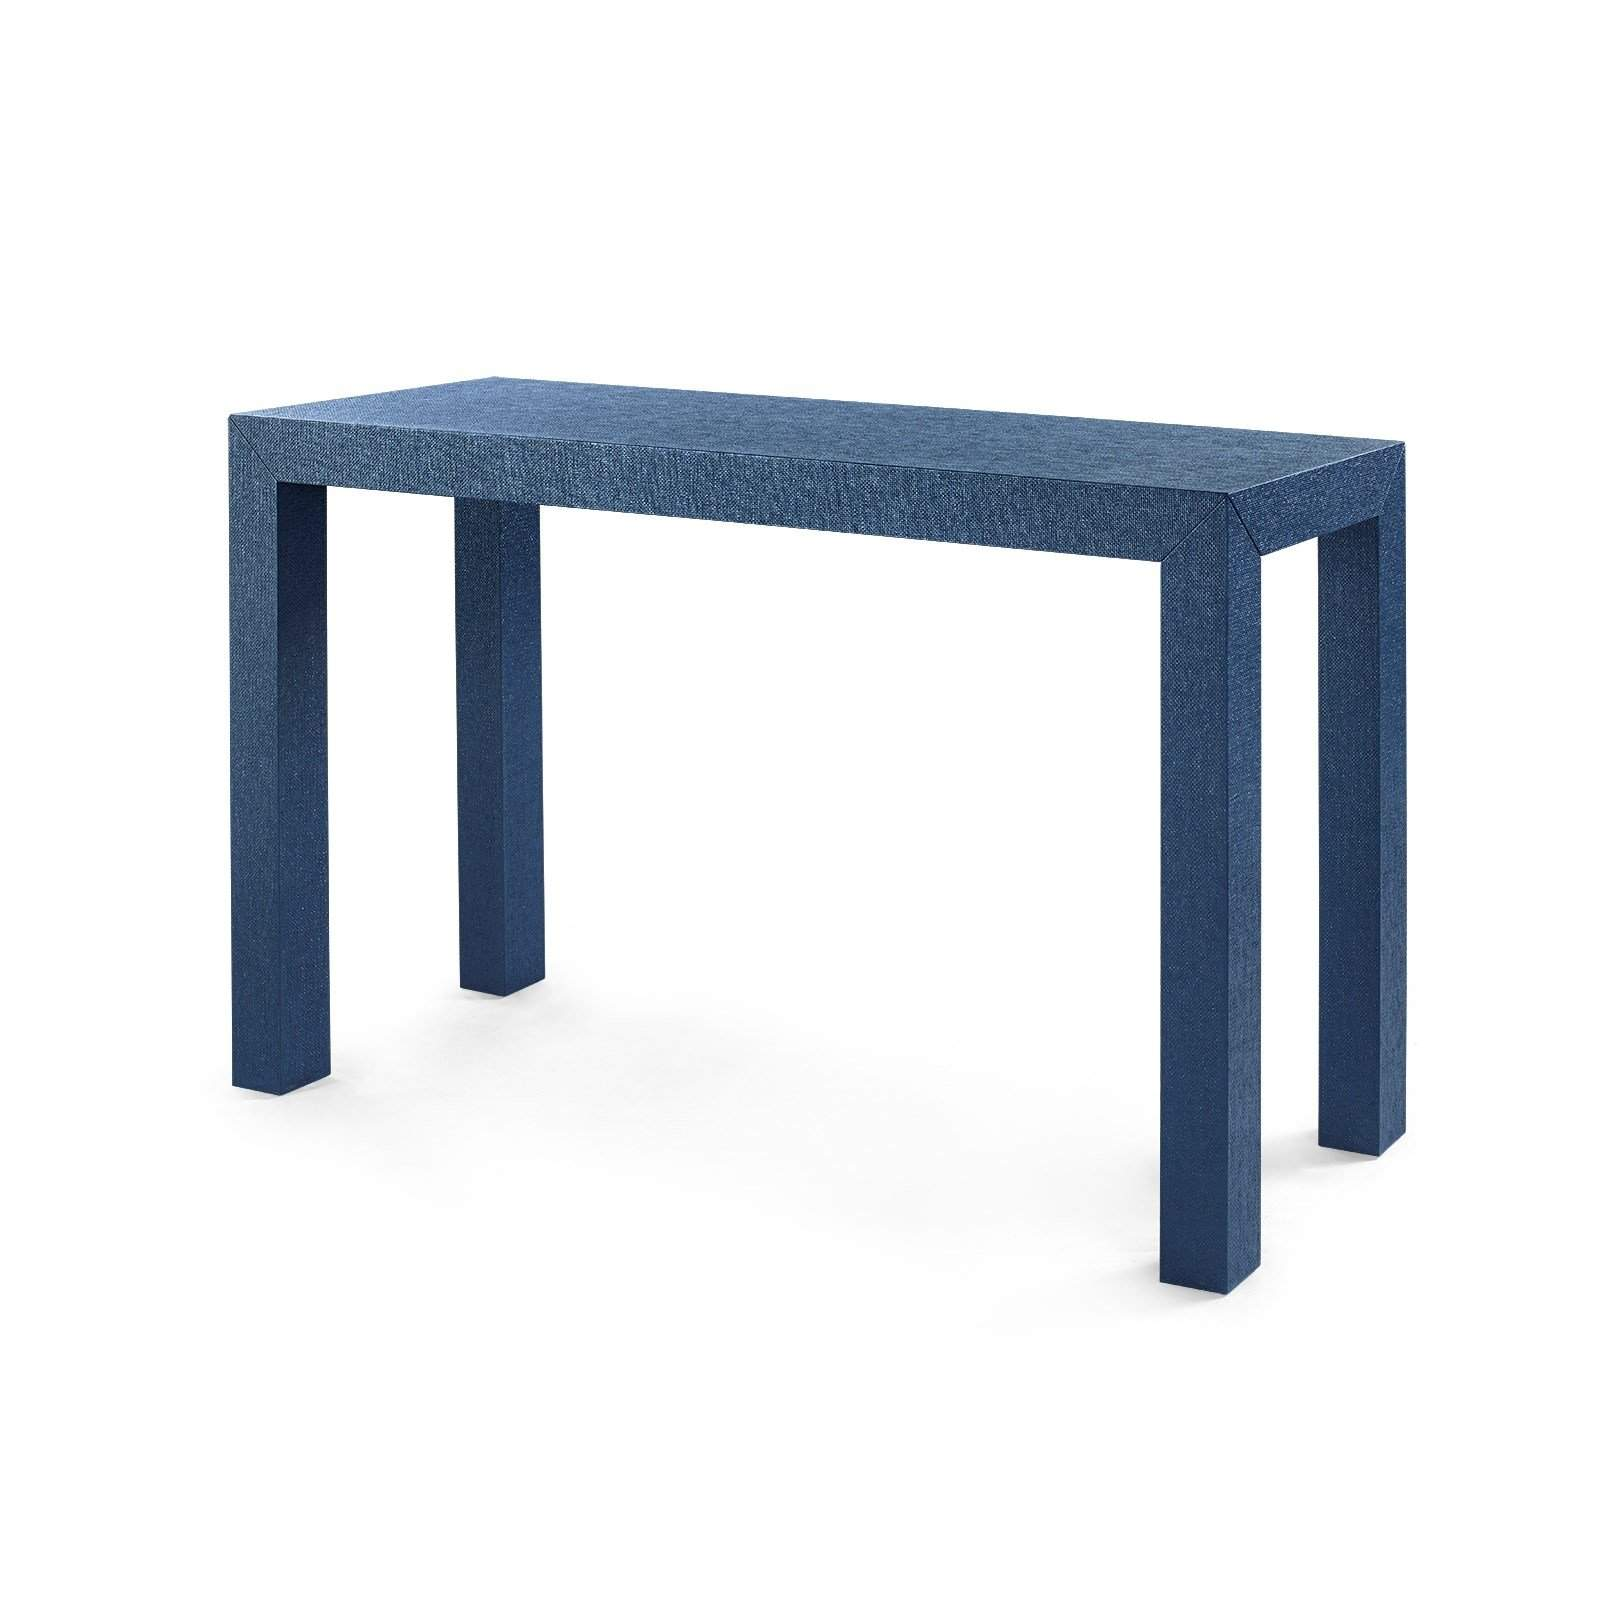 Bungalow 5 - PARSONS CONSOLE TABLE in NAVY BLUE-Bungalow 5-Blue Hand Home